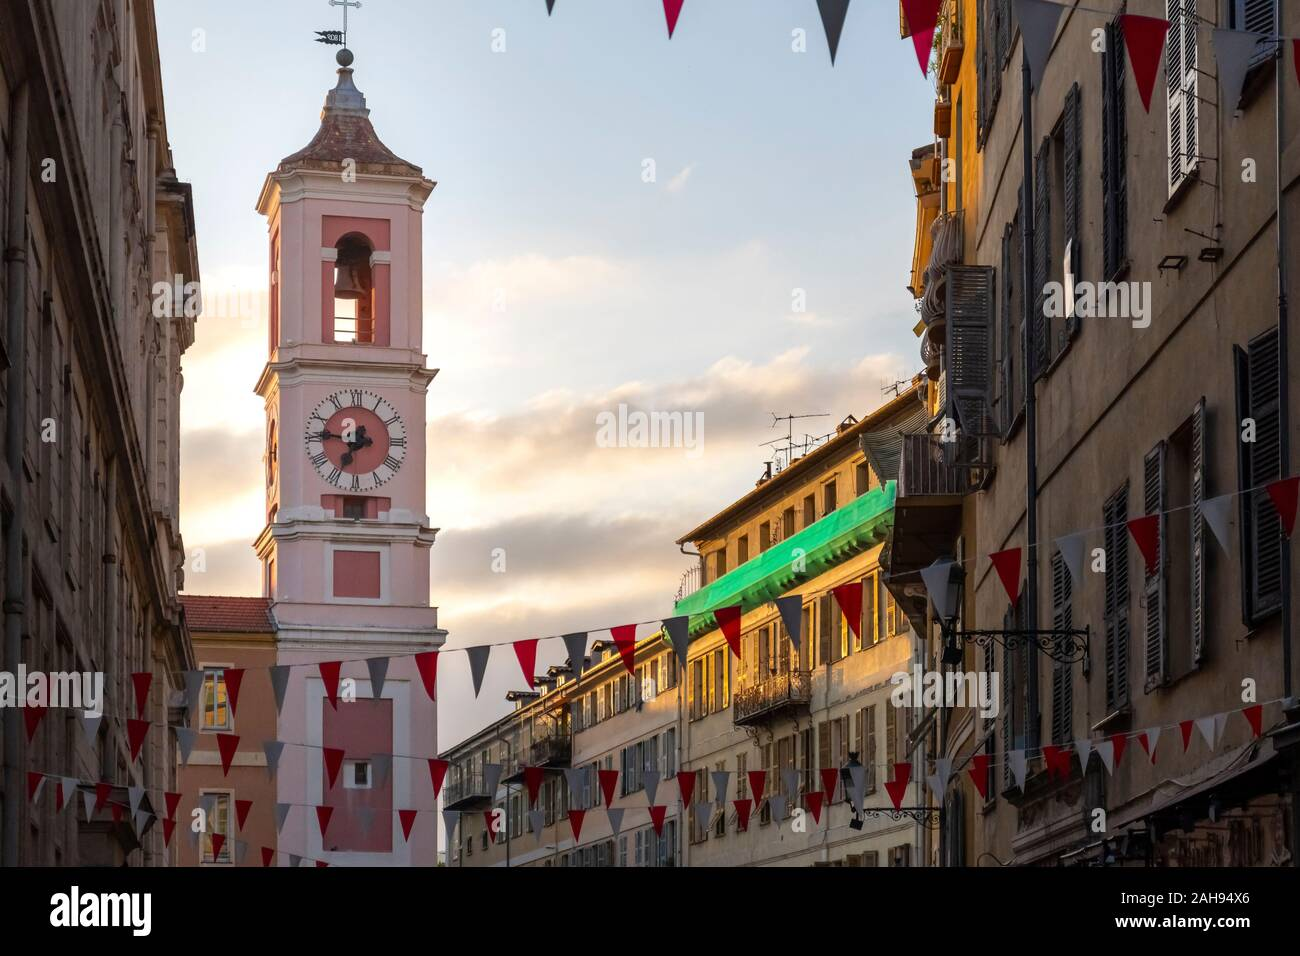 Evening view of the Rusca Palace Clock Tower at the Place du Palais du Justice with red and white flags draped over the street in Nice, France Stock Photo